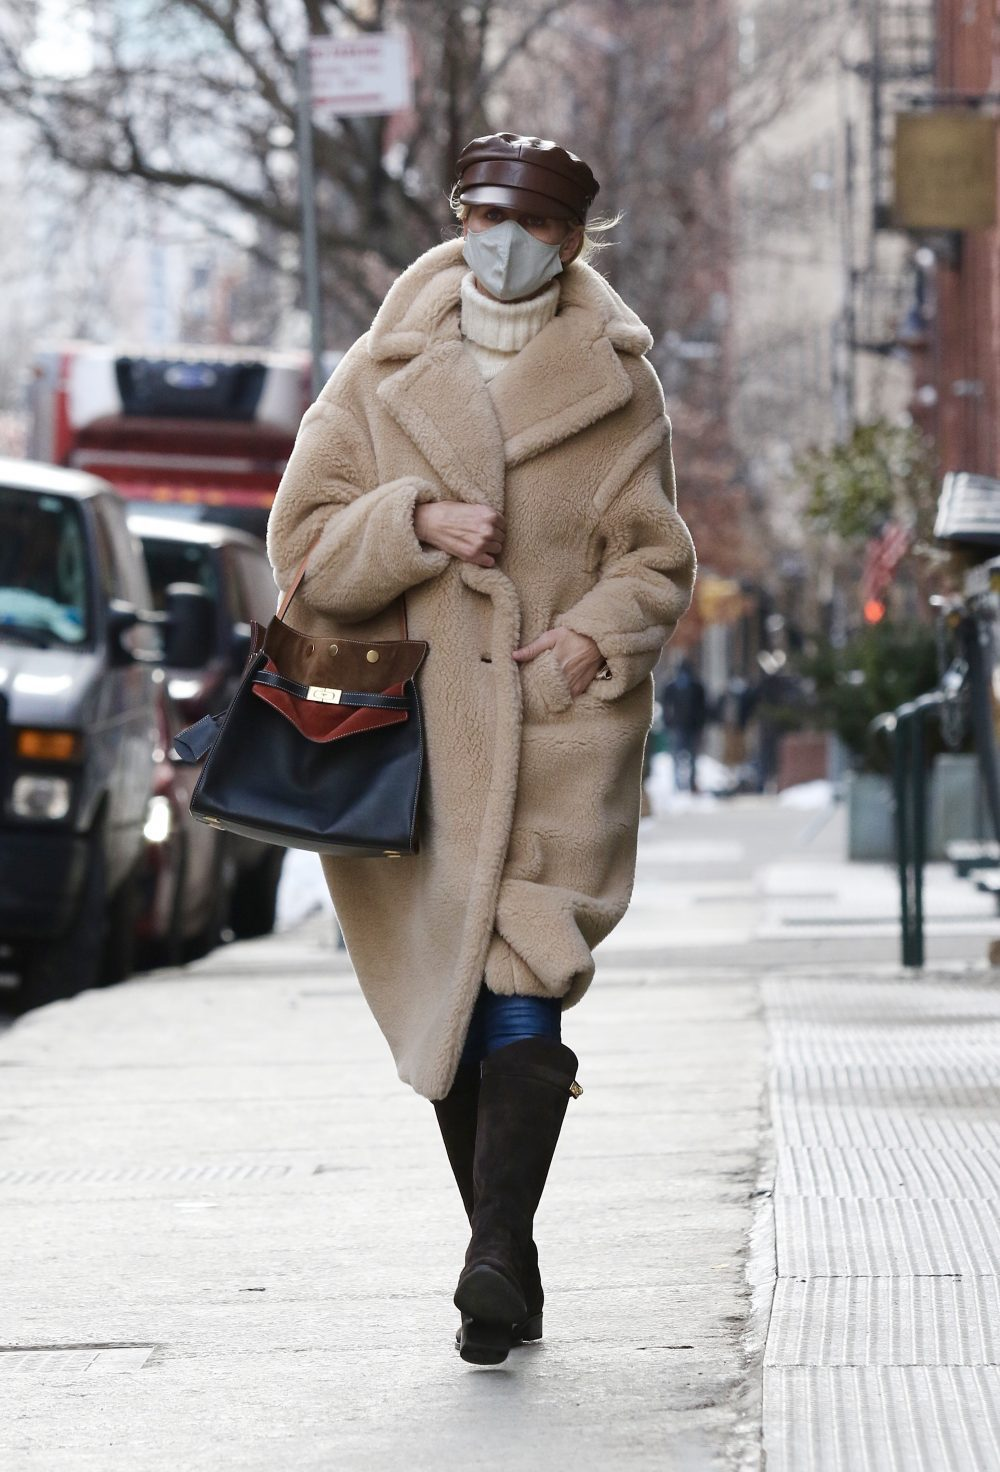 Nicky Hilton is all bundled up for the cold weather while shopping in NYC